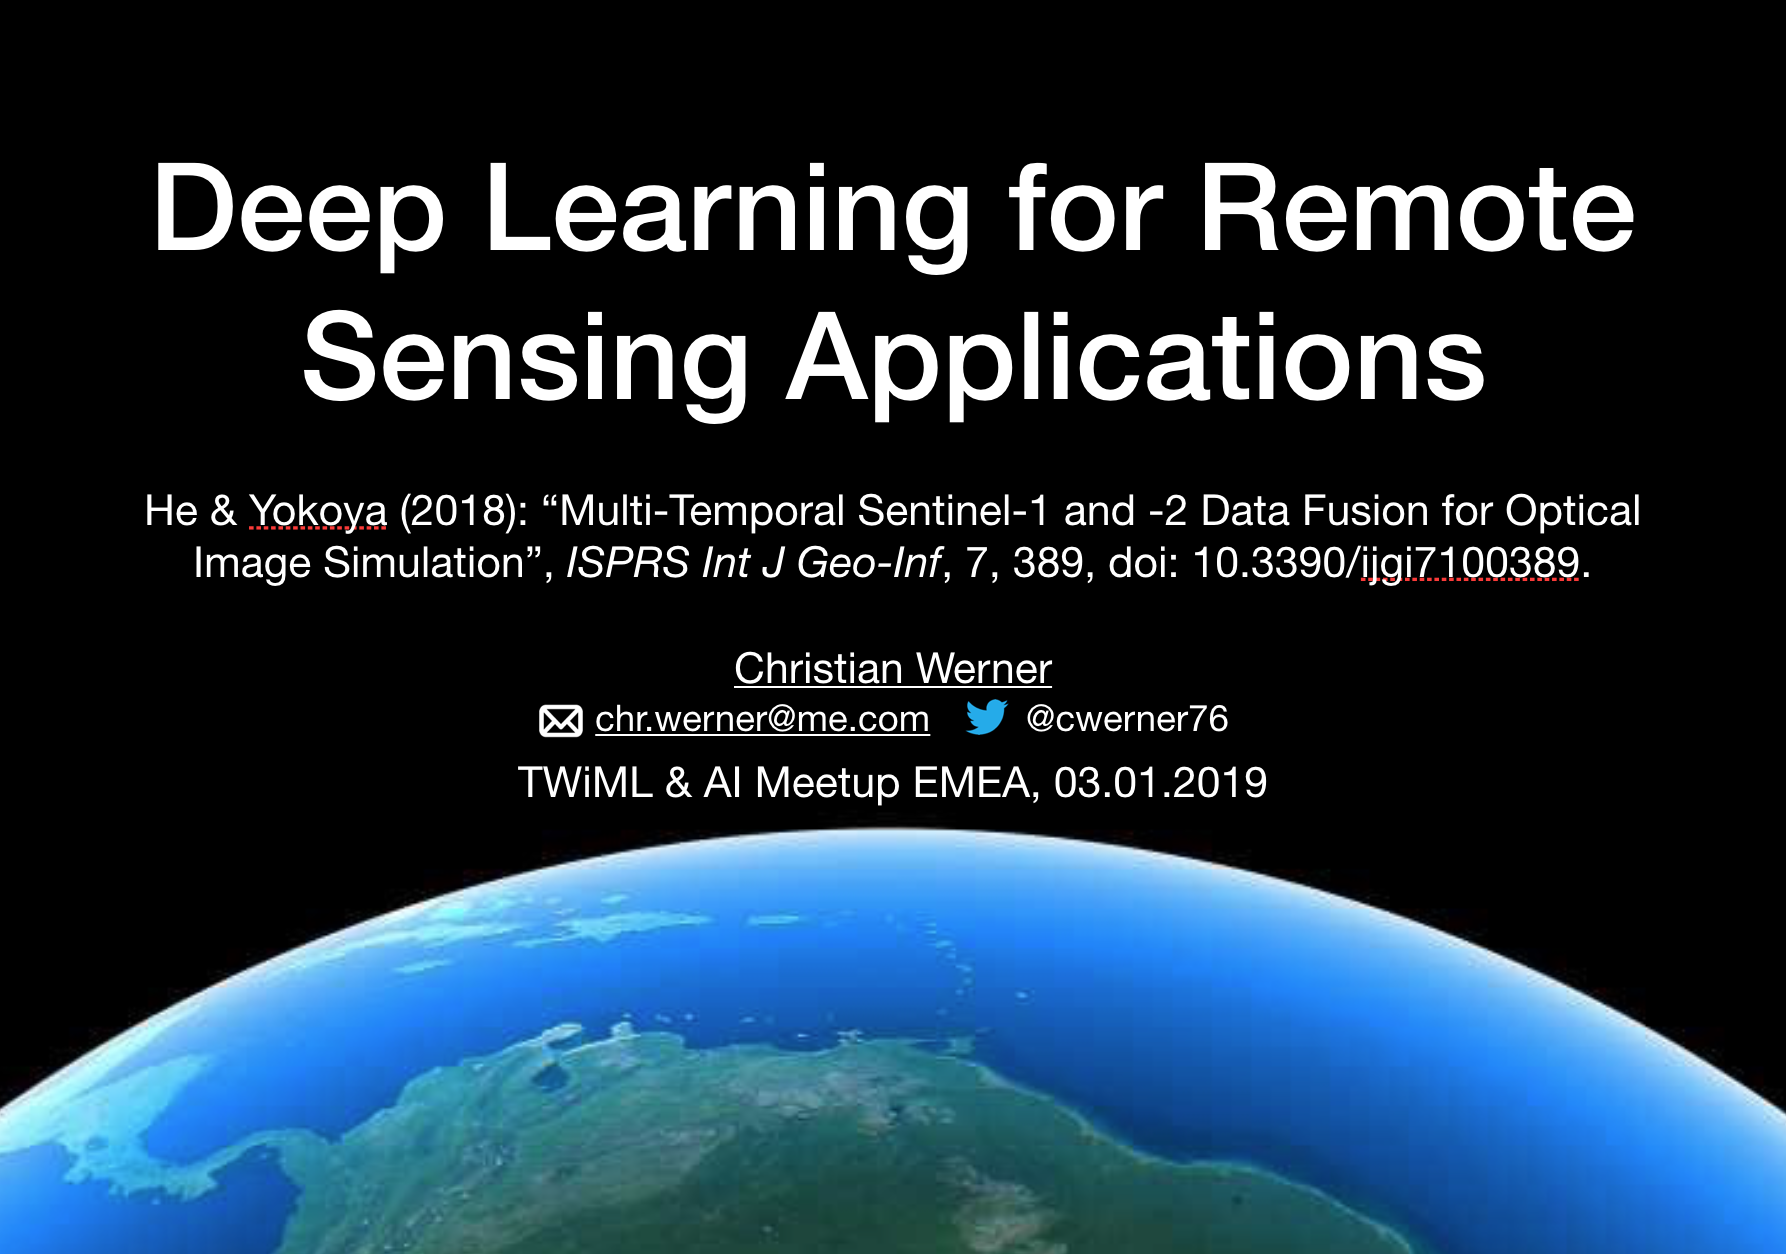 Deep Learning for Remote Sensing